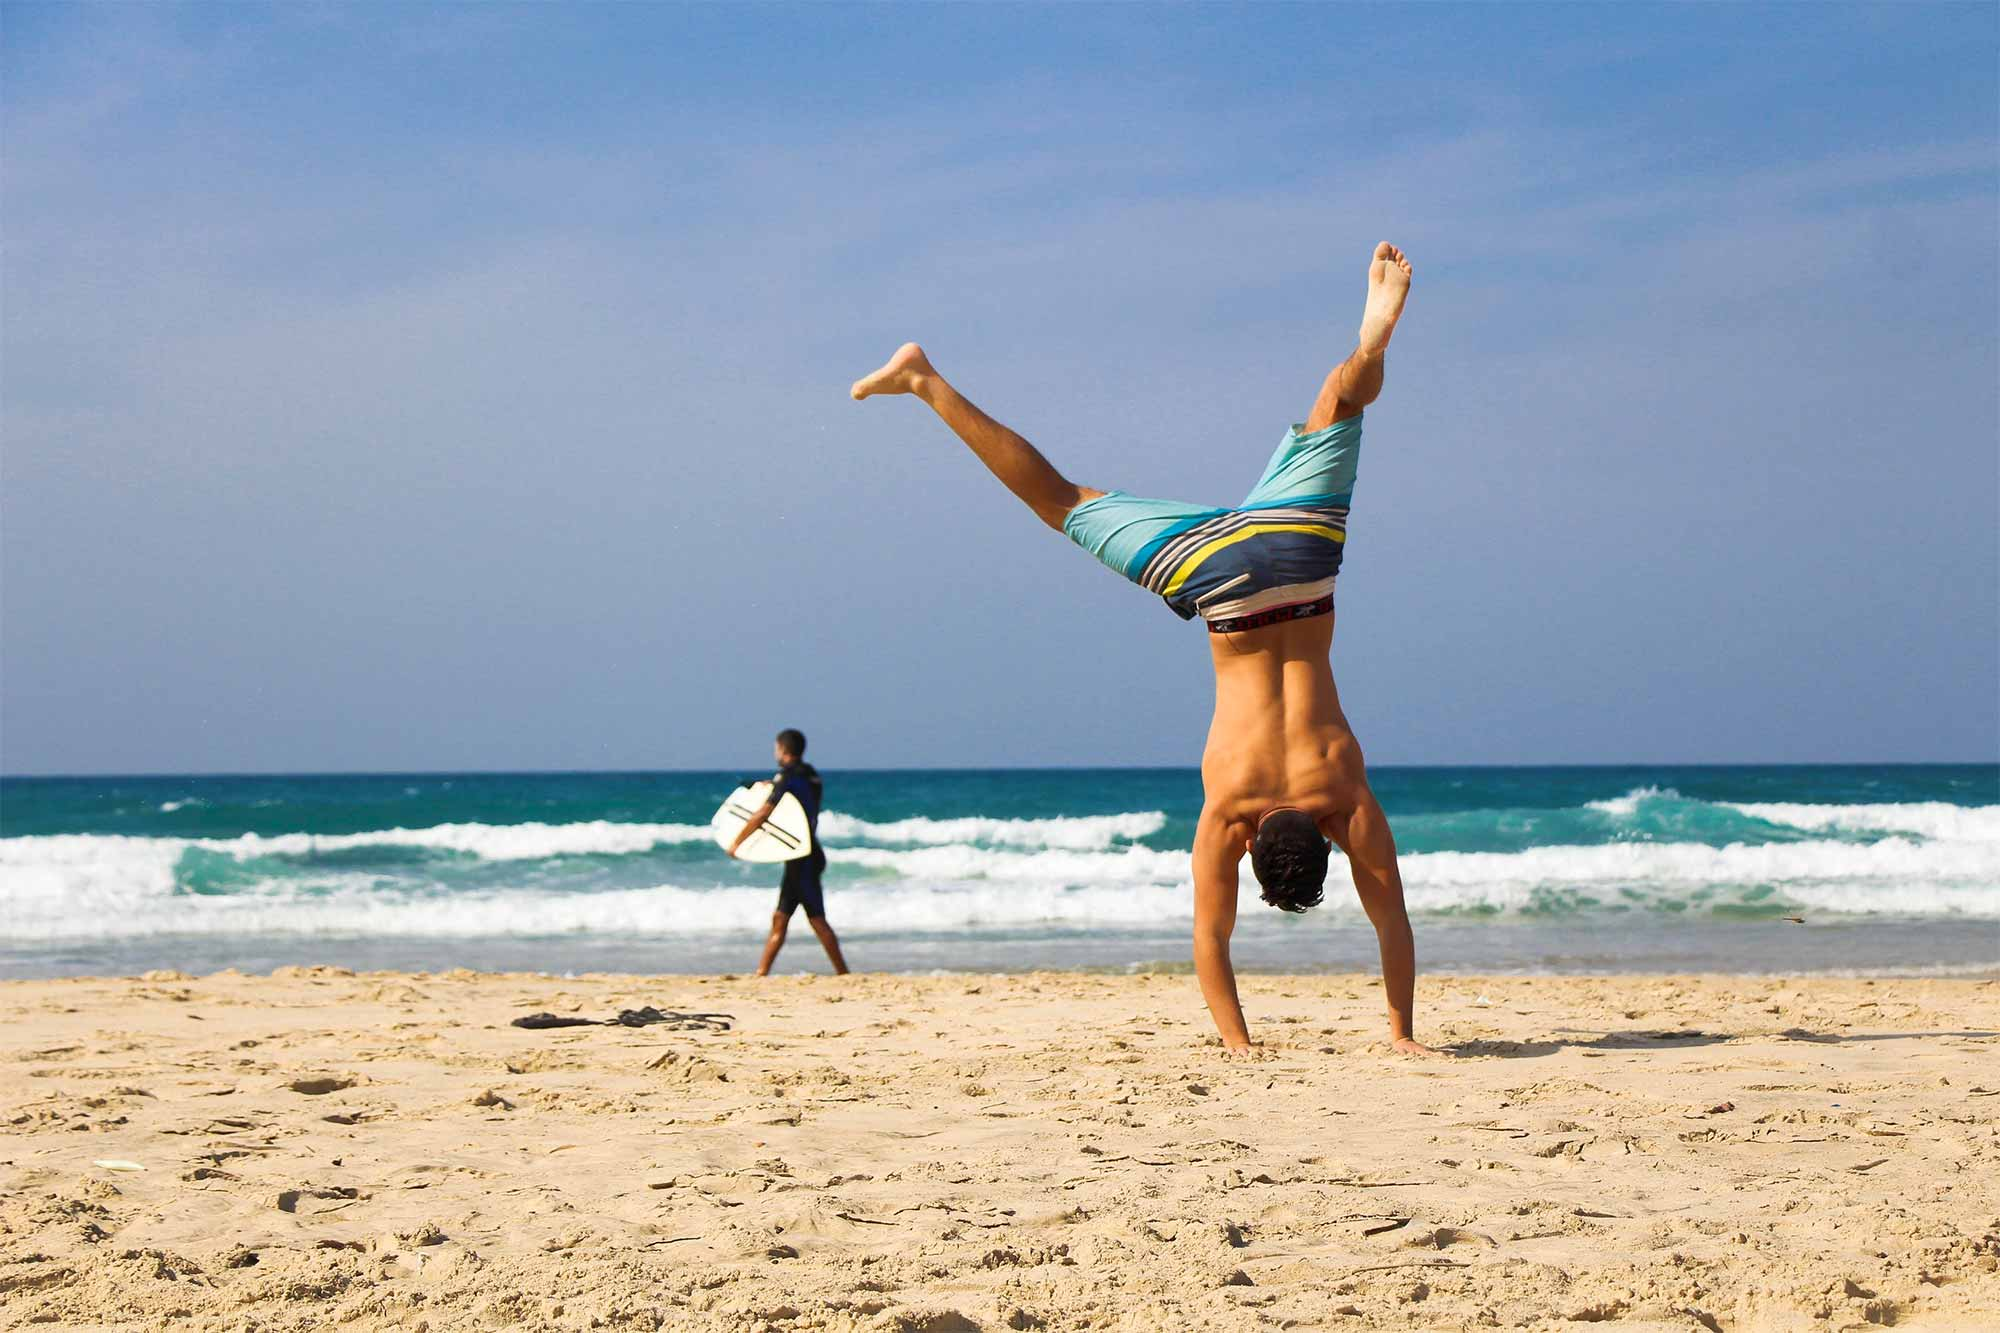 Man doing cartwheels on the beach